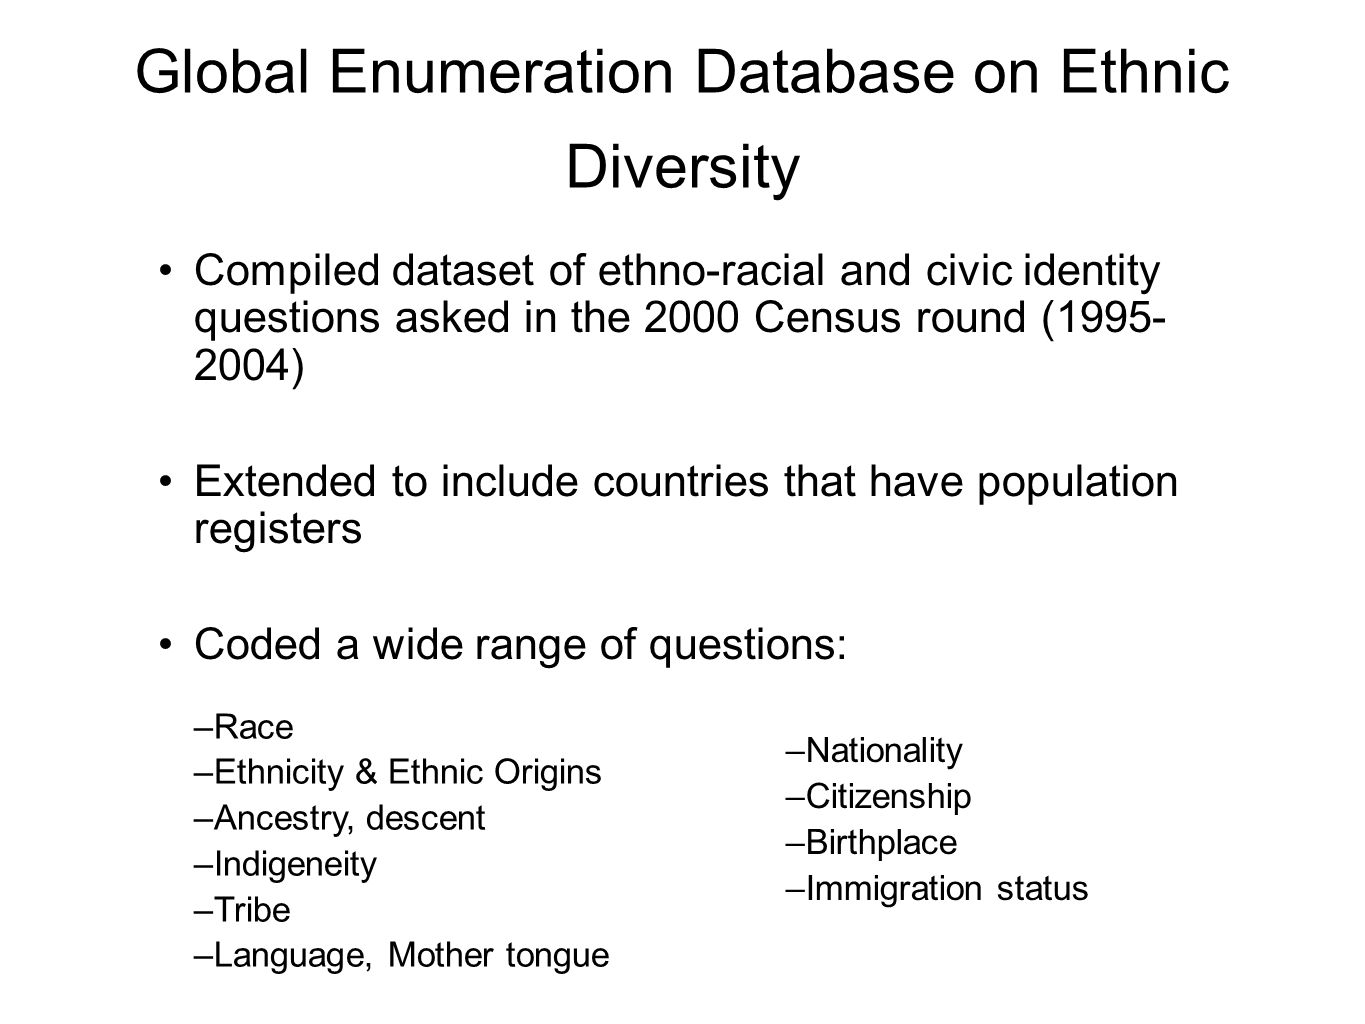 Global Enumeration Database on Ethnic Diversity Compiled dataset of ethno-racial and civic identity questions asked in the 2000 Census round (1995- 2004) Extended to include countries that have population registers Coded a wide range of questions: –Race –Ethnicity & Ethnic Origins –Ancestry, descent –Indigeneity –Tribe –Language, Mother tongue –Nationality –Citizenship –Birthplace –Immigration status